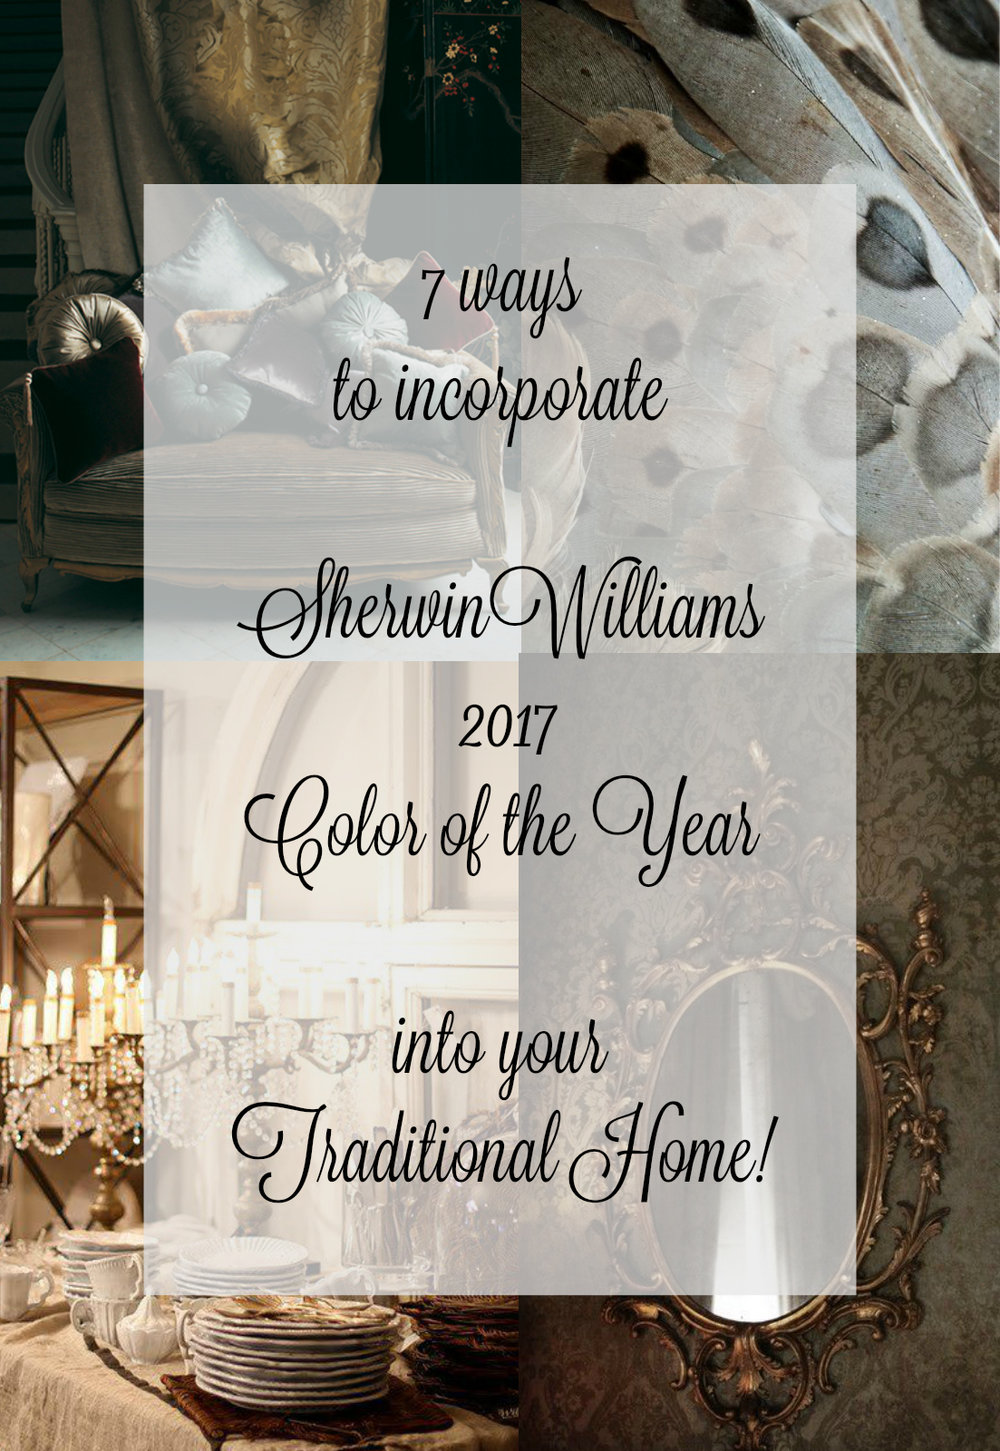 7 ways to incorporate Sherwin Williams 2017 Color of the Year into your Traditional Home